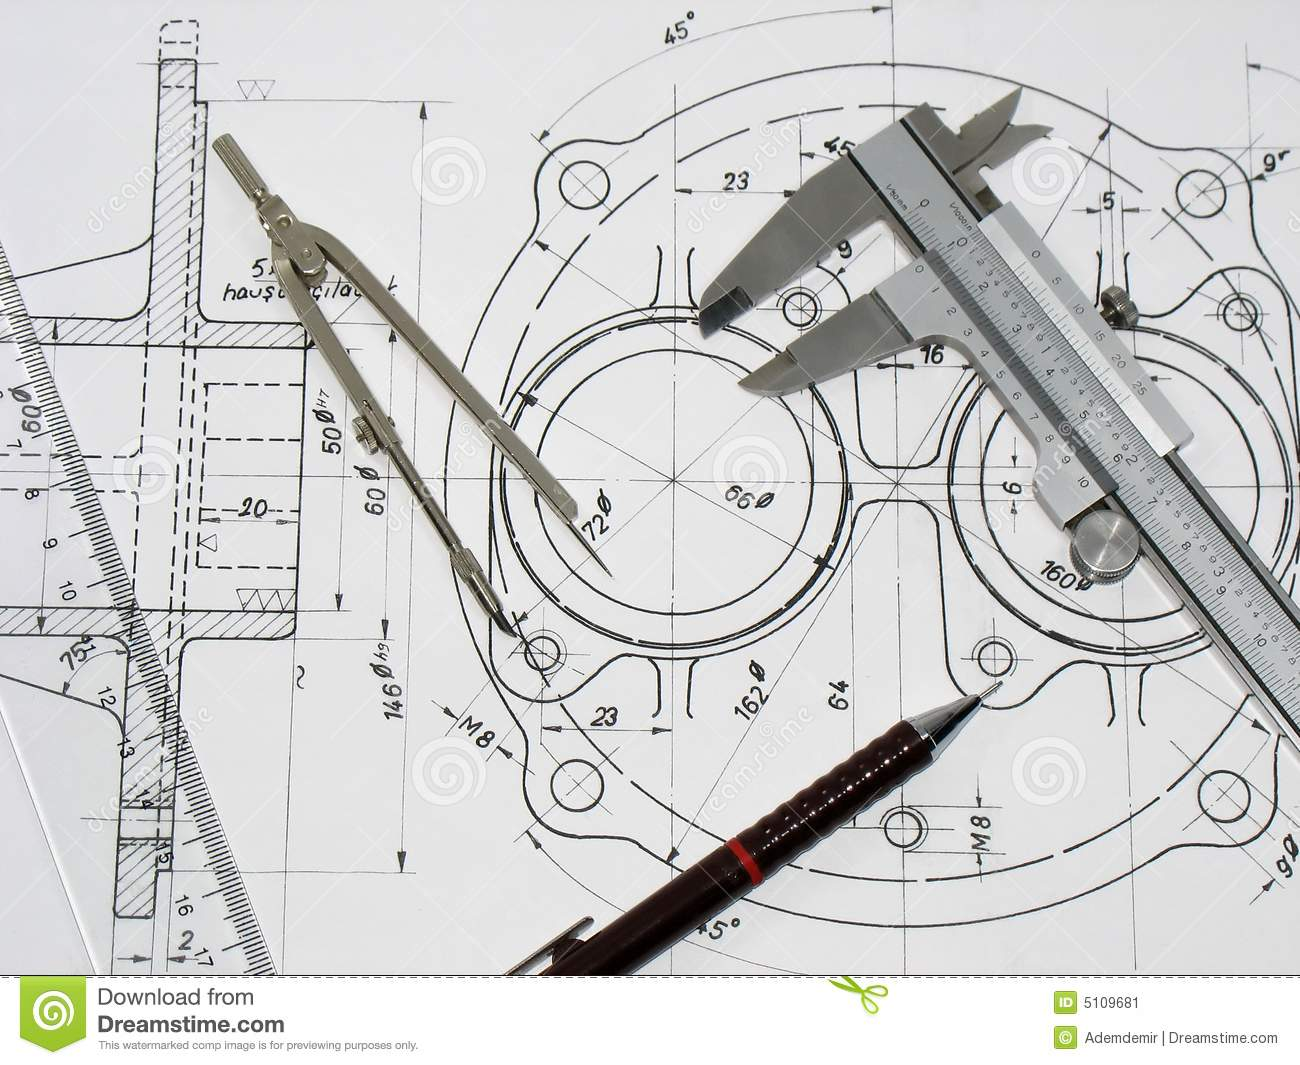 Quotes about Technical drawing (33 quotes)